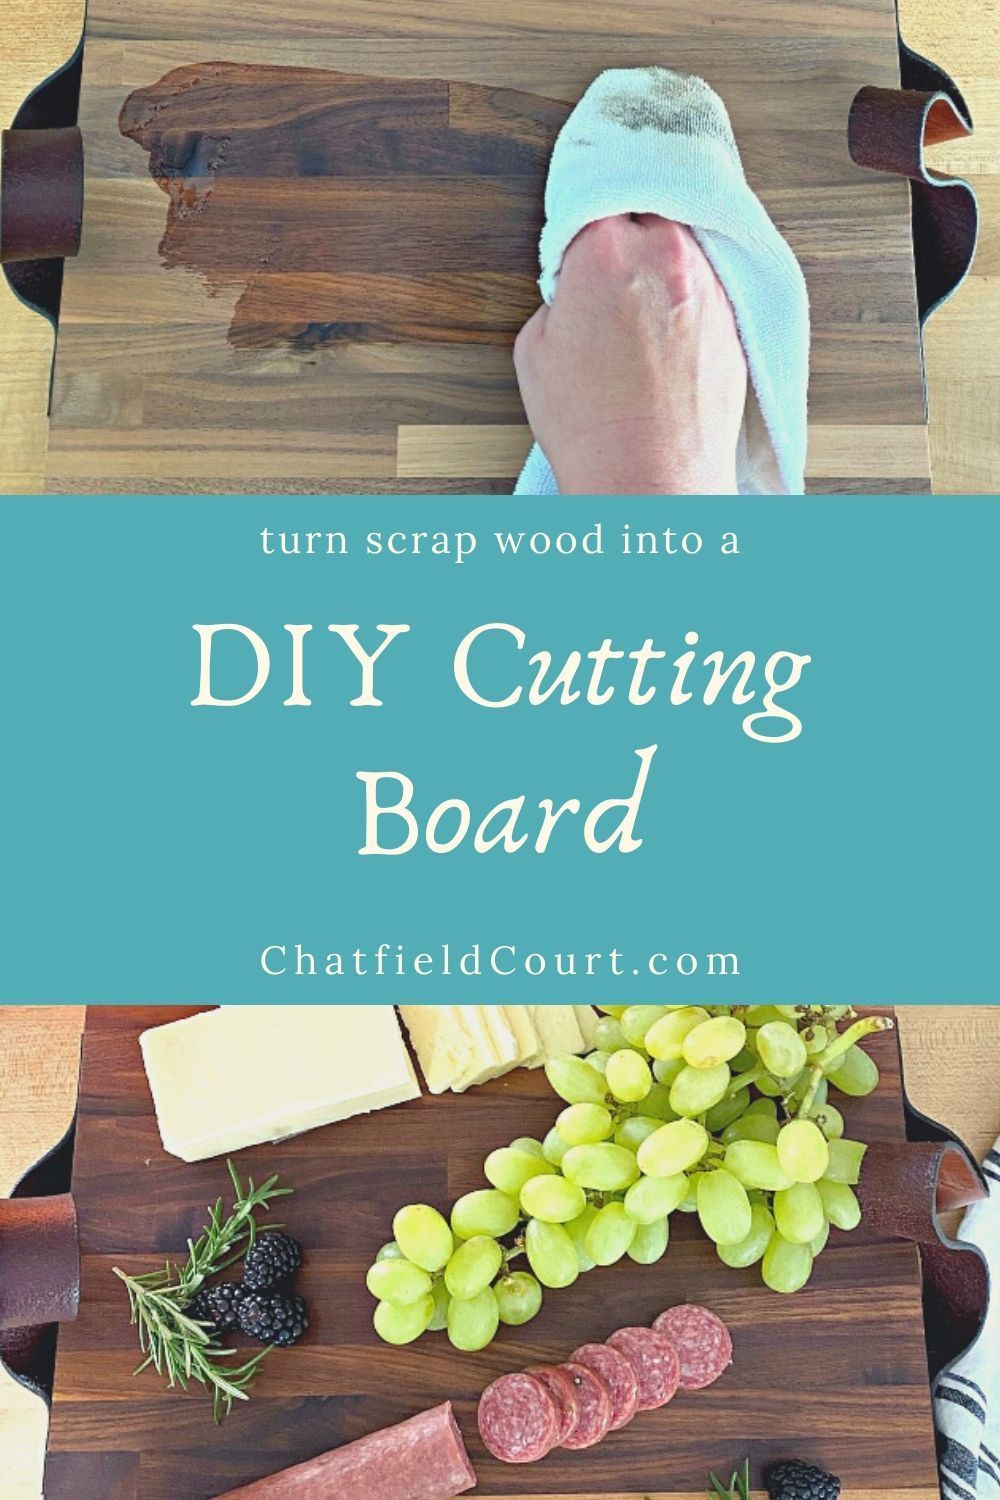 How to make a DIY butcher block cutting board from a scrap piece of wood and a thrifted kid's leather belt.